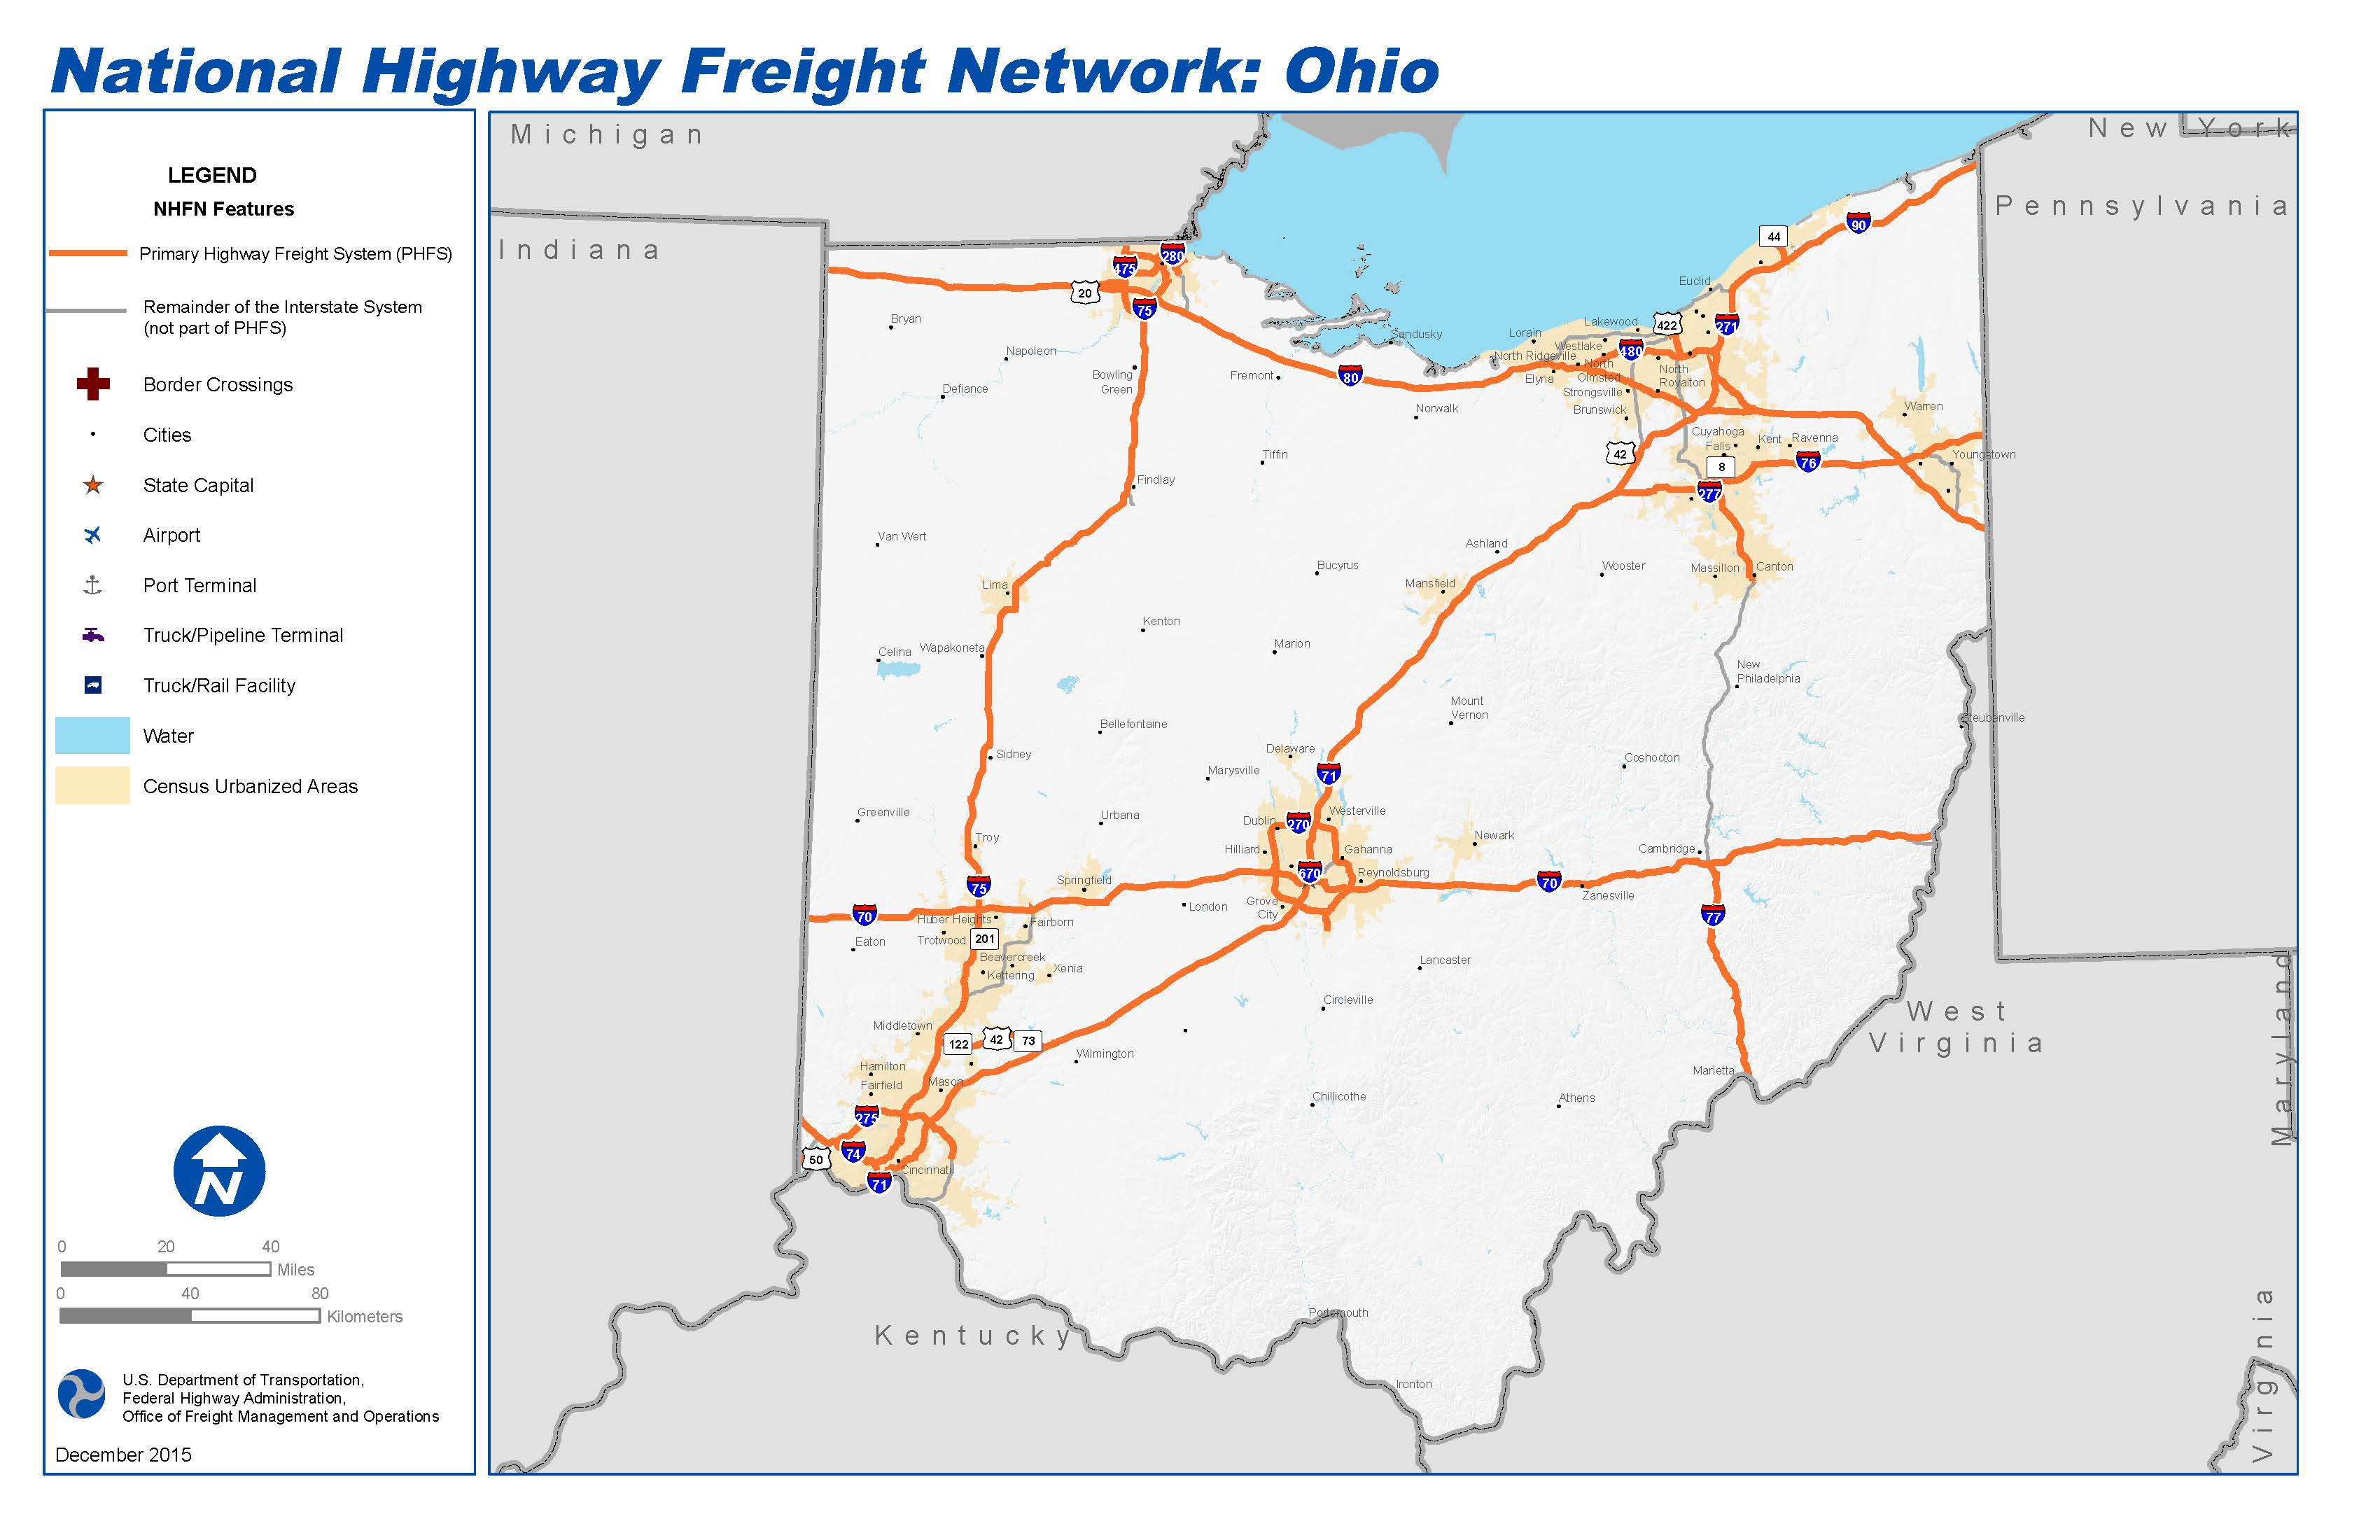 National Highway Freight Network Map and Tables for Ohio FHWA